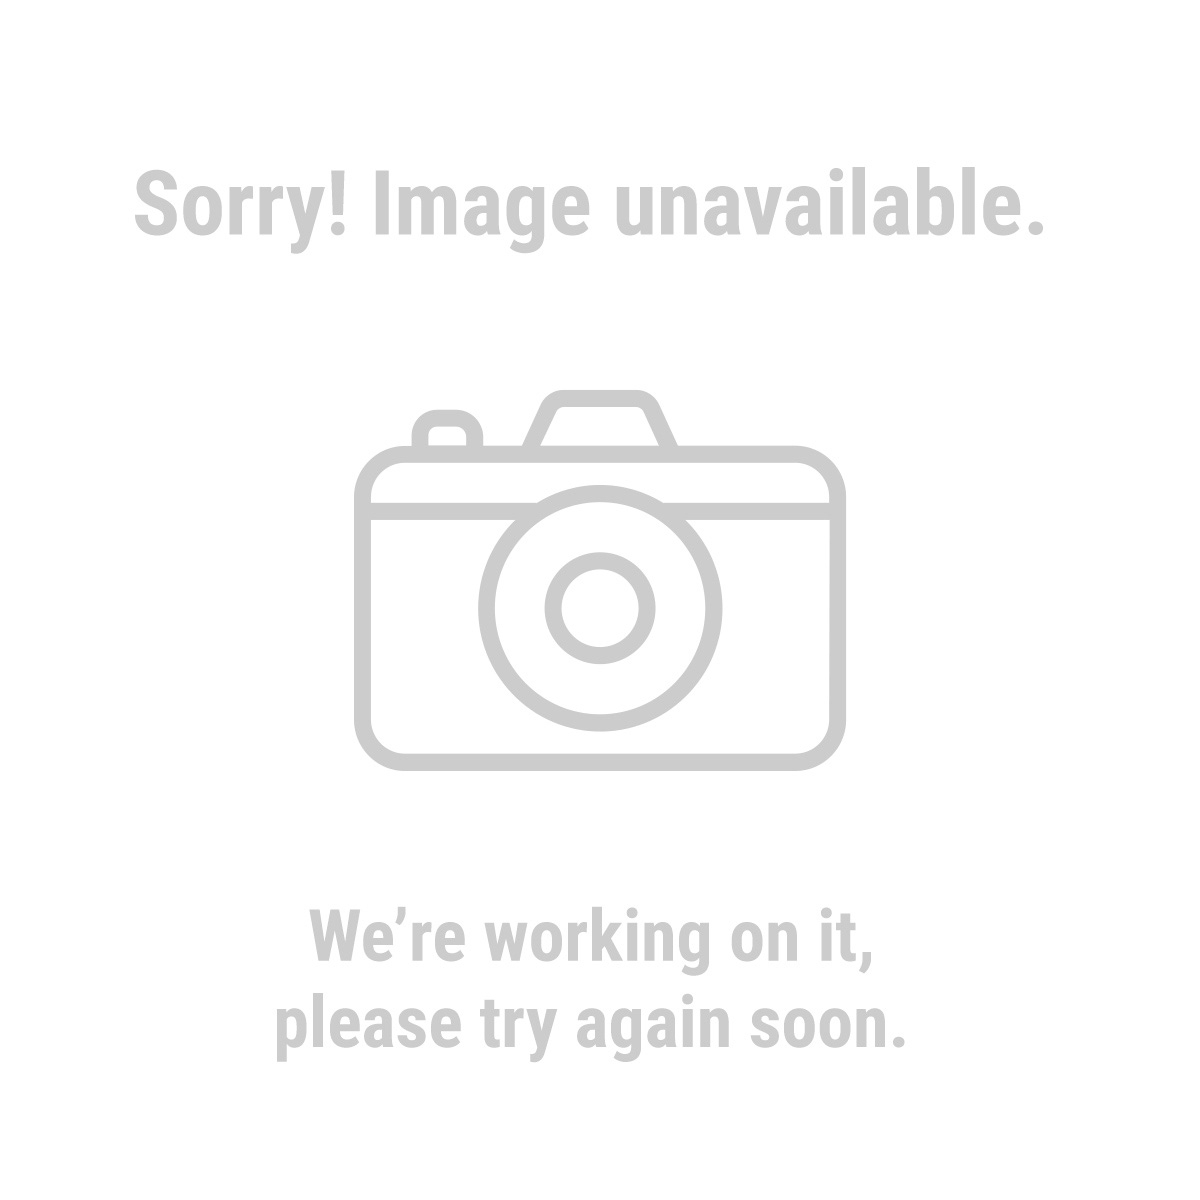 Admiral 62735 7-1/4 in. 40T Finishing Circular Saw Blade